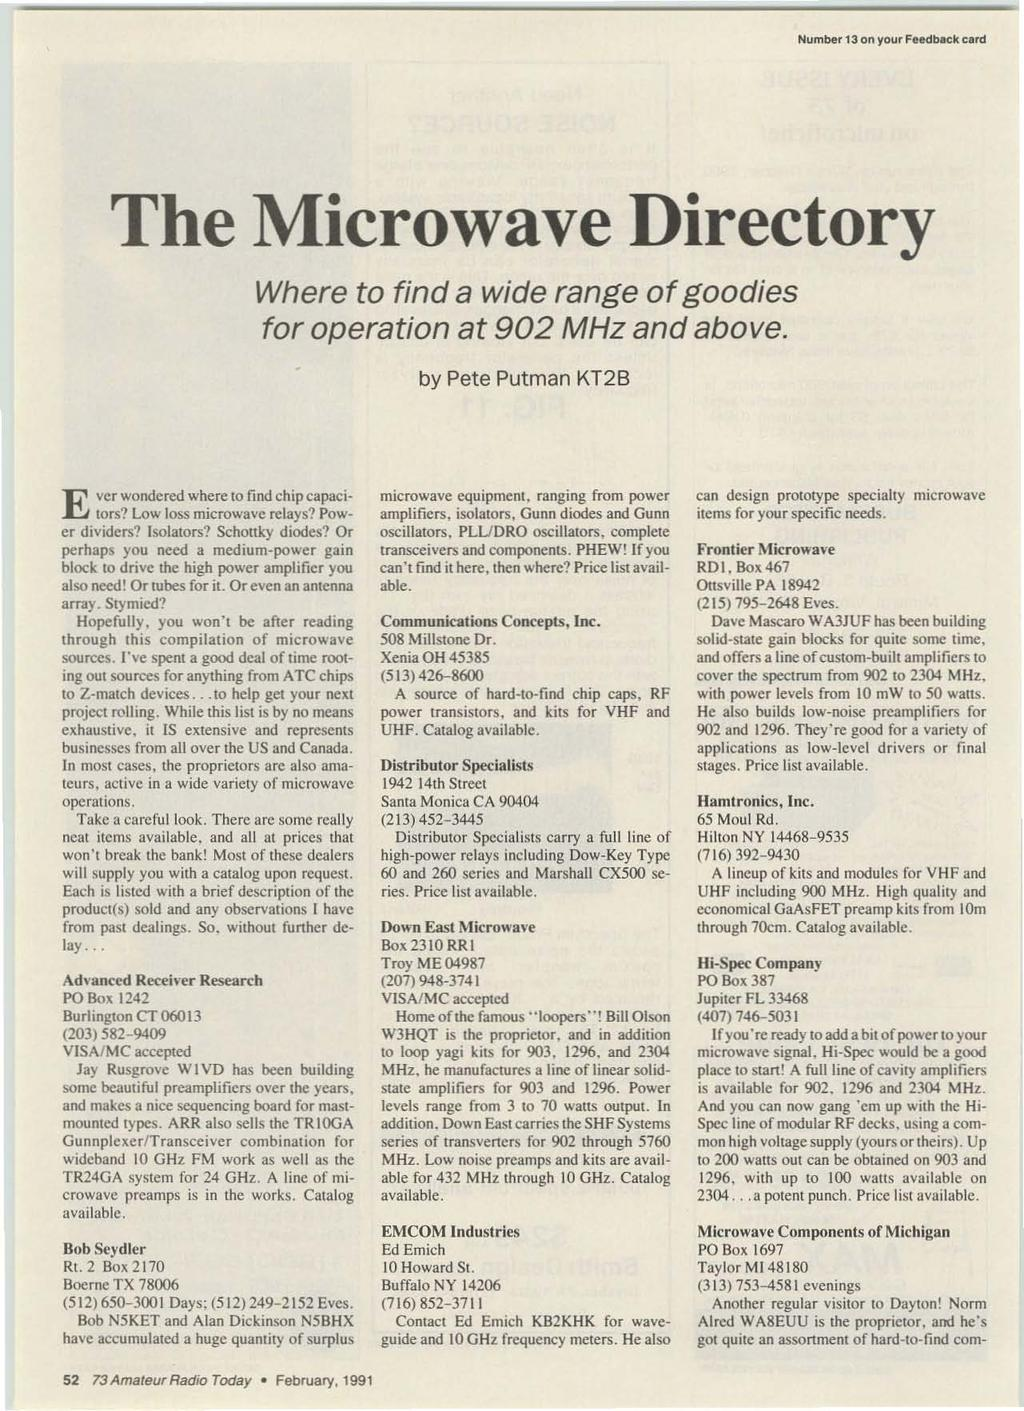 February 1991 Issue 365 Usa 295 Can395 A Wge Publication I R Alf 3d Printer Ramps 14 Board Numbe 13 On Your Feedbeck Card The Micro W V E Director Y Where To Find